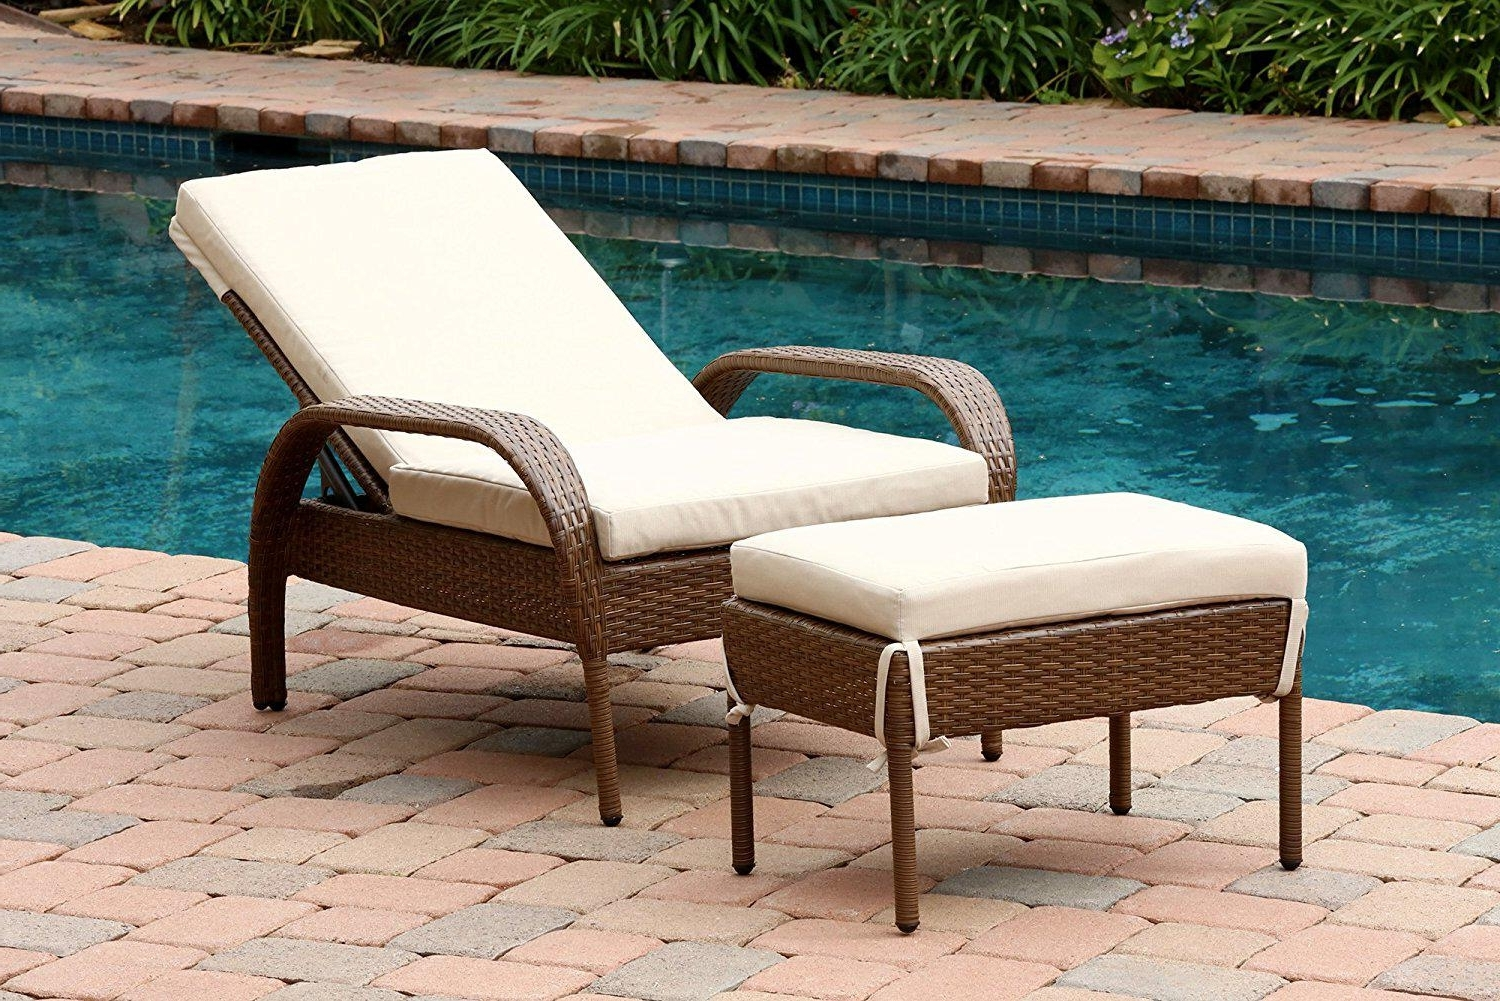 2018 Outdoor : Patio Furniture Lounge Lounge Chairs For Bedroom Plastic Regarding Web Chaise Lounge Lawn Chairs (View 1 of 15)